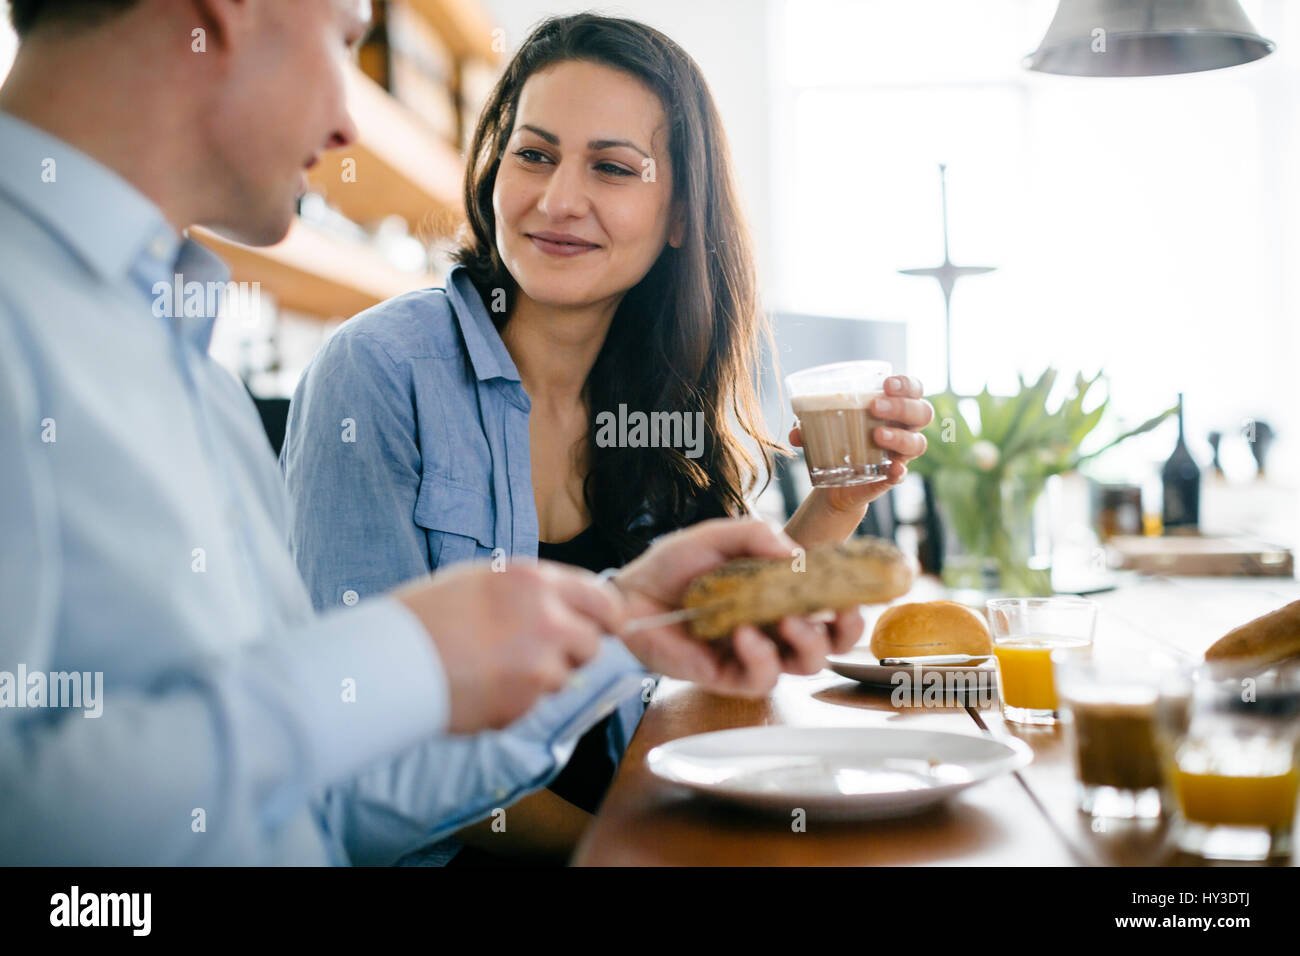 Germany, Couple eating breakfast at table - Stock Image